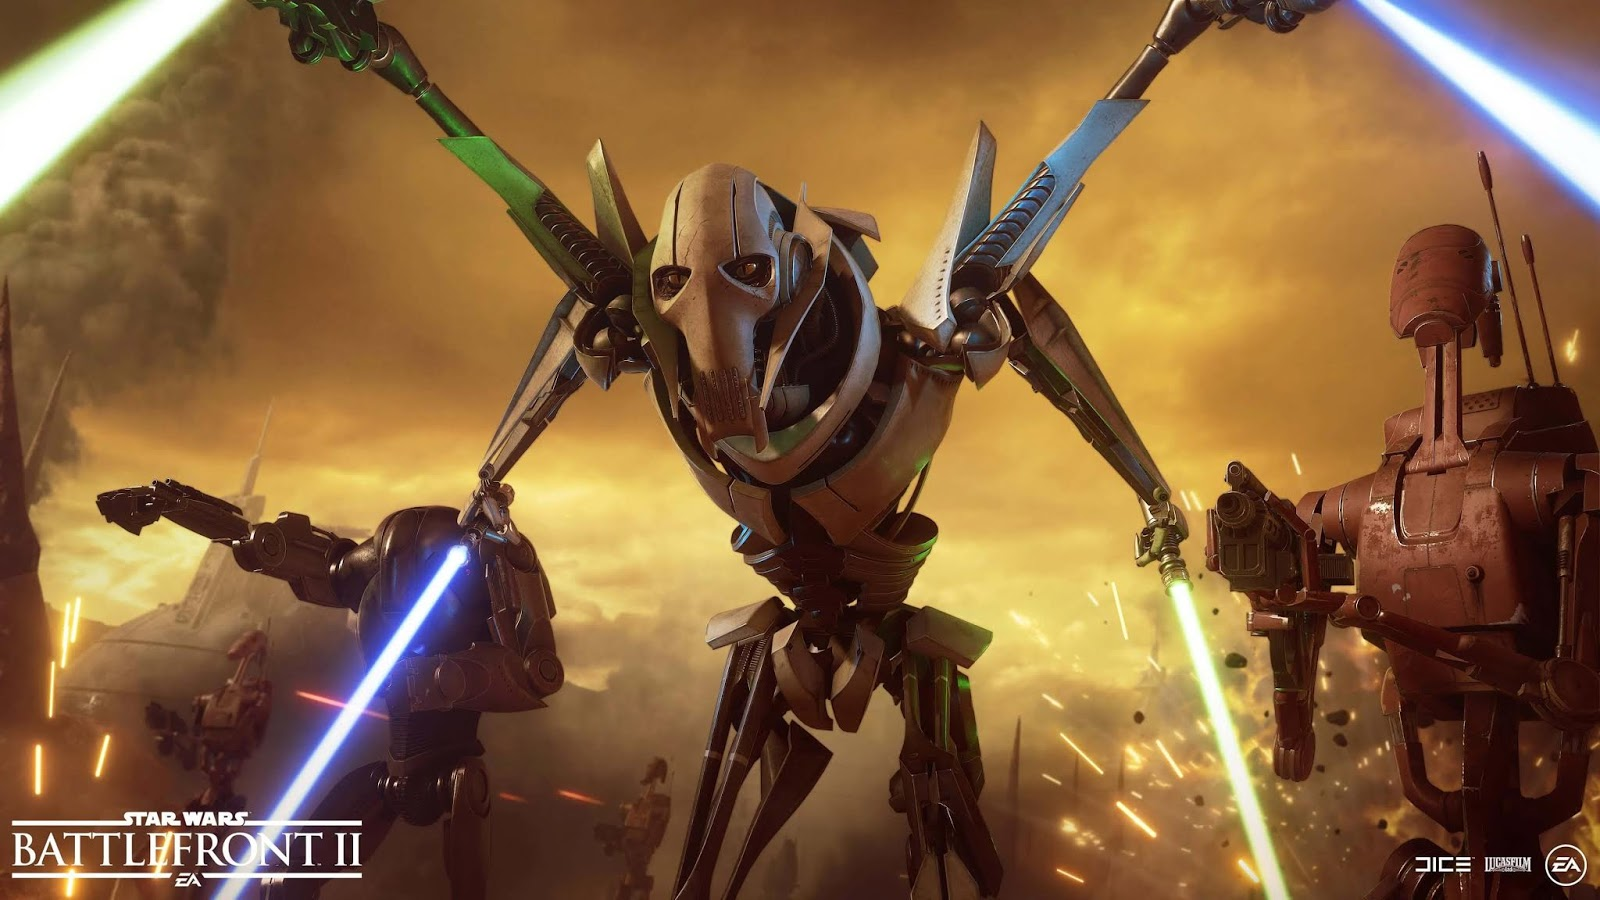 Star Wars Battlefront II General Grievous Update Is Now Live